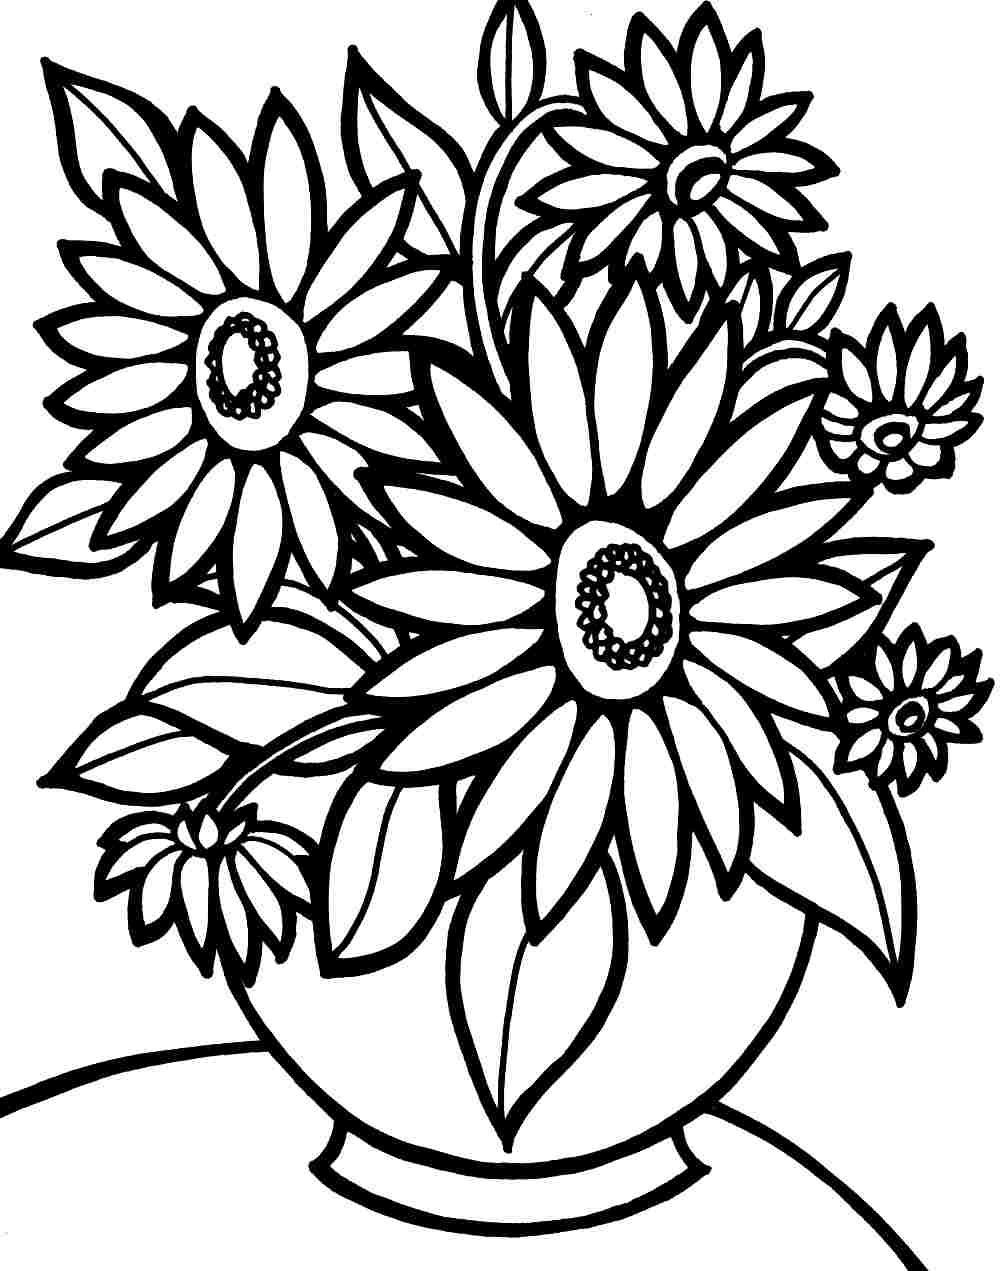 Free Flower Coloring Pages For Kids  Colouring Pages Bouquet Flowers Printable Free For Kids